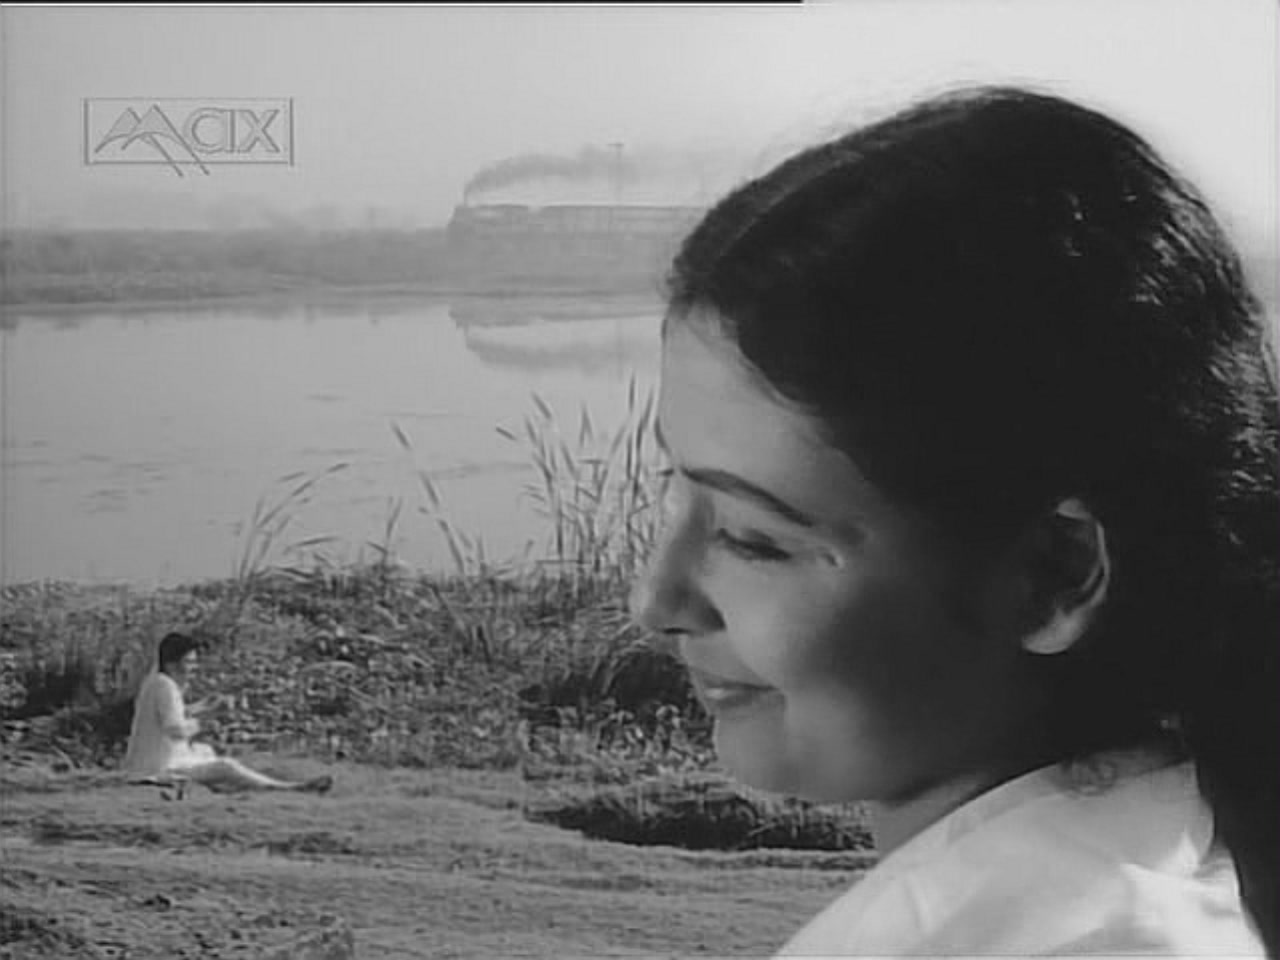 Supriya Choudhury and Anil Chatterjee in Ritwik Ghatak's The Cloud-Capped Star